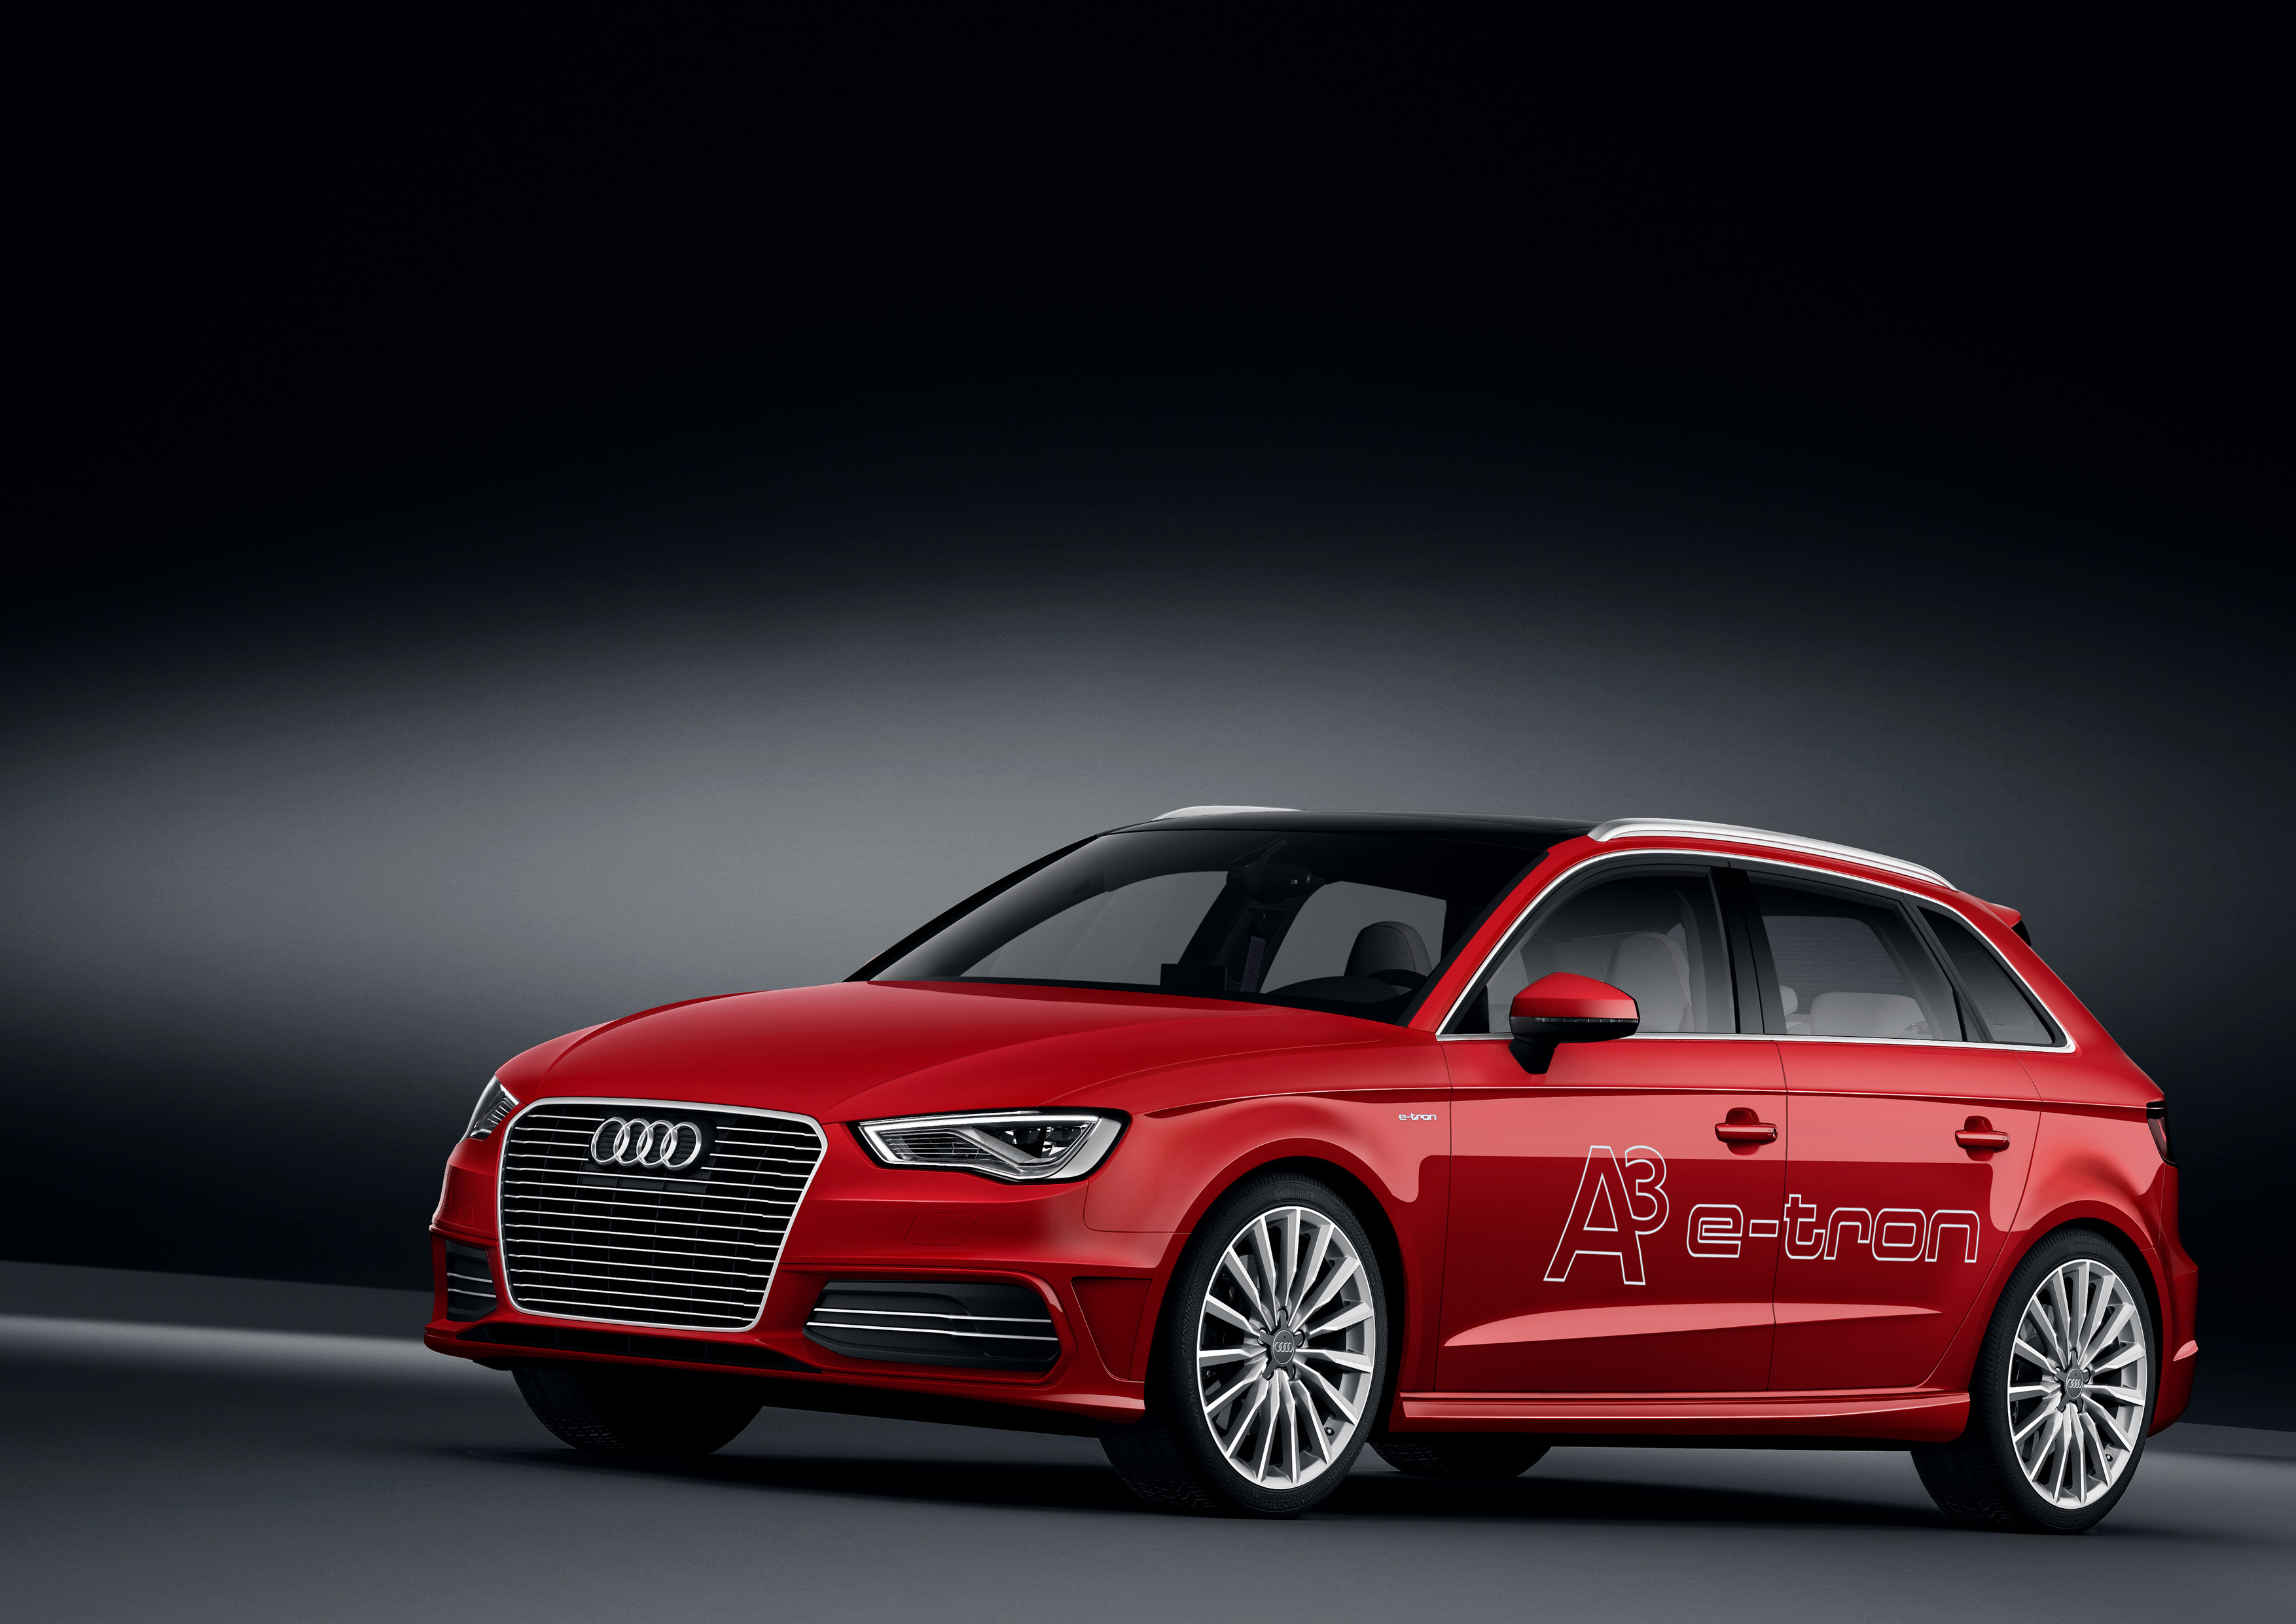 Audi A3 e-tron wheels #4